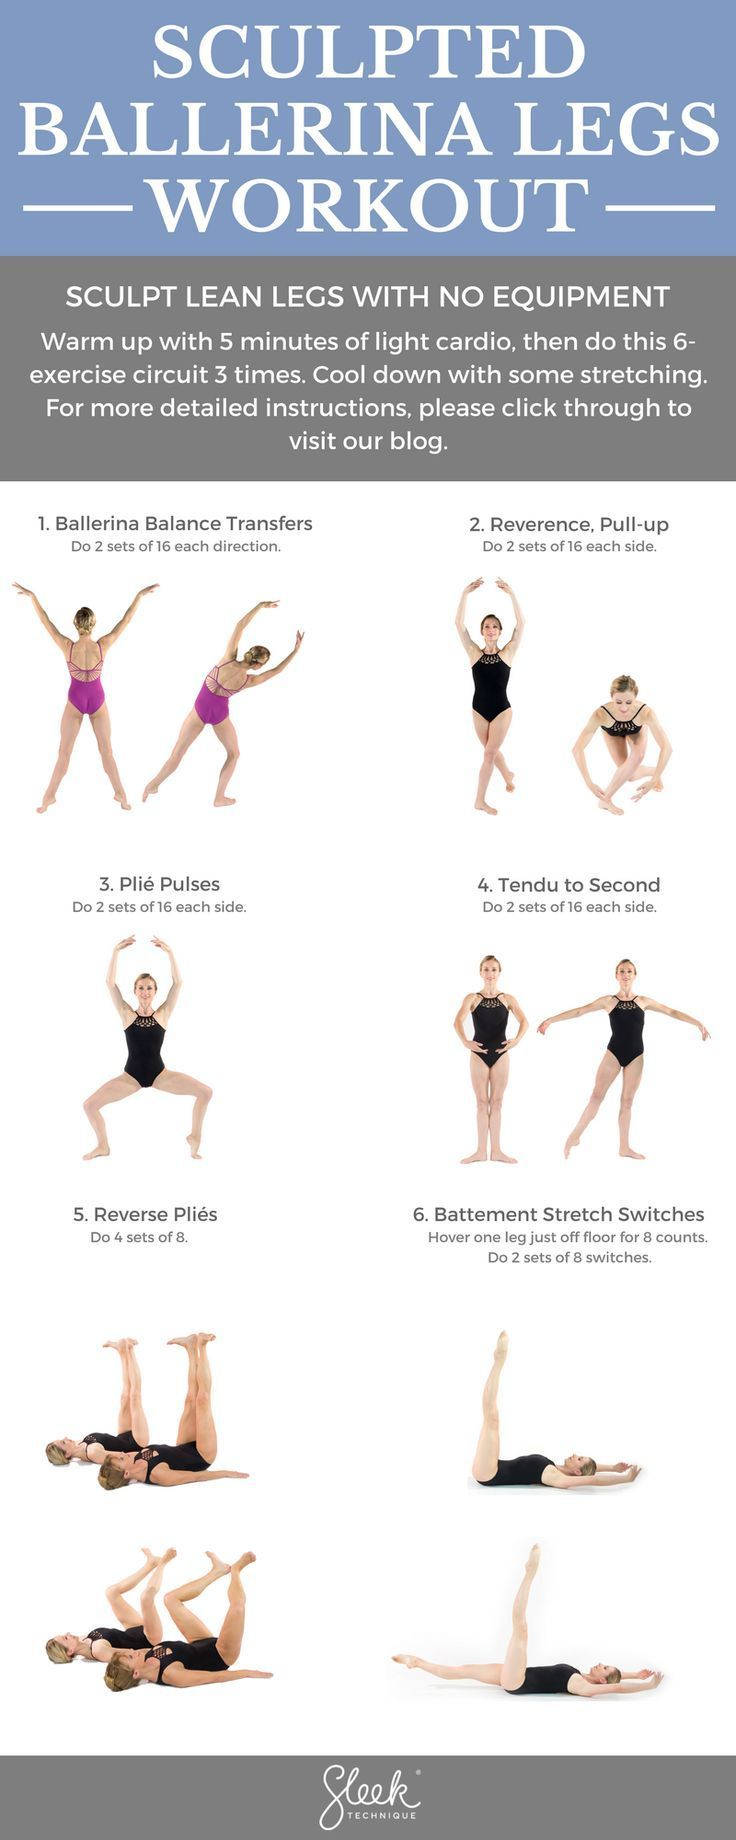 Sculpted Ballerina Legs Workout #balletfitness